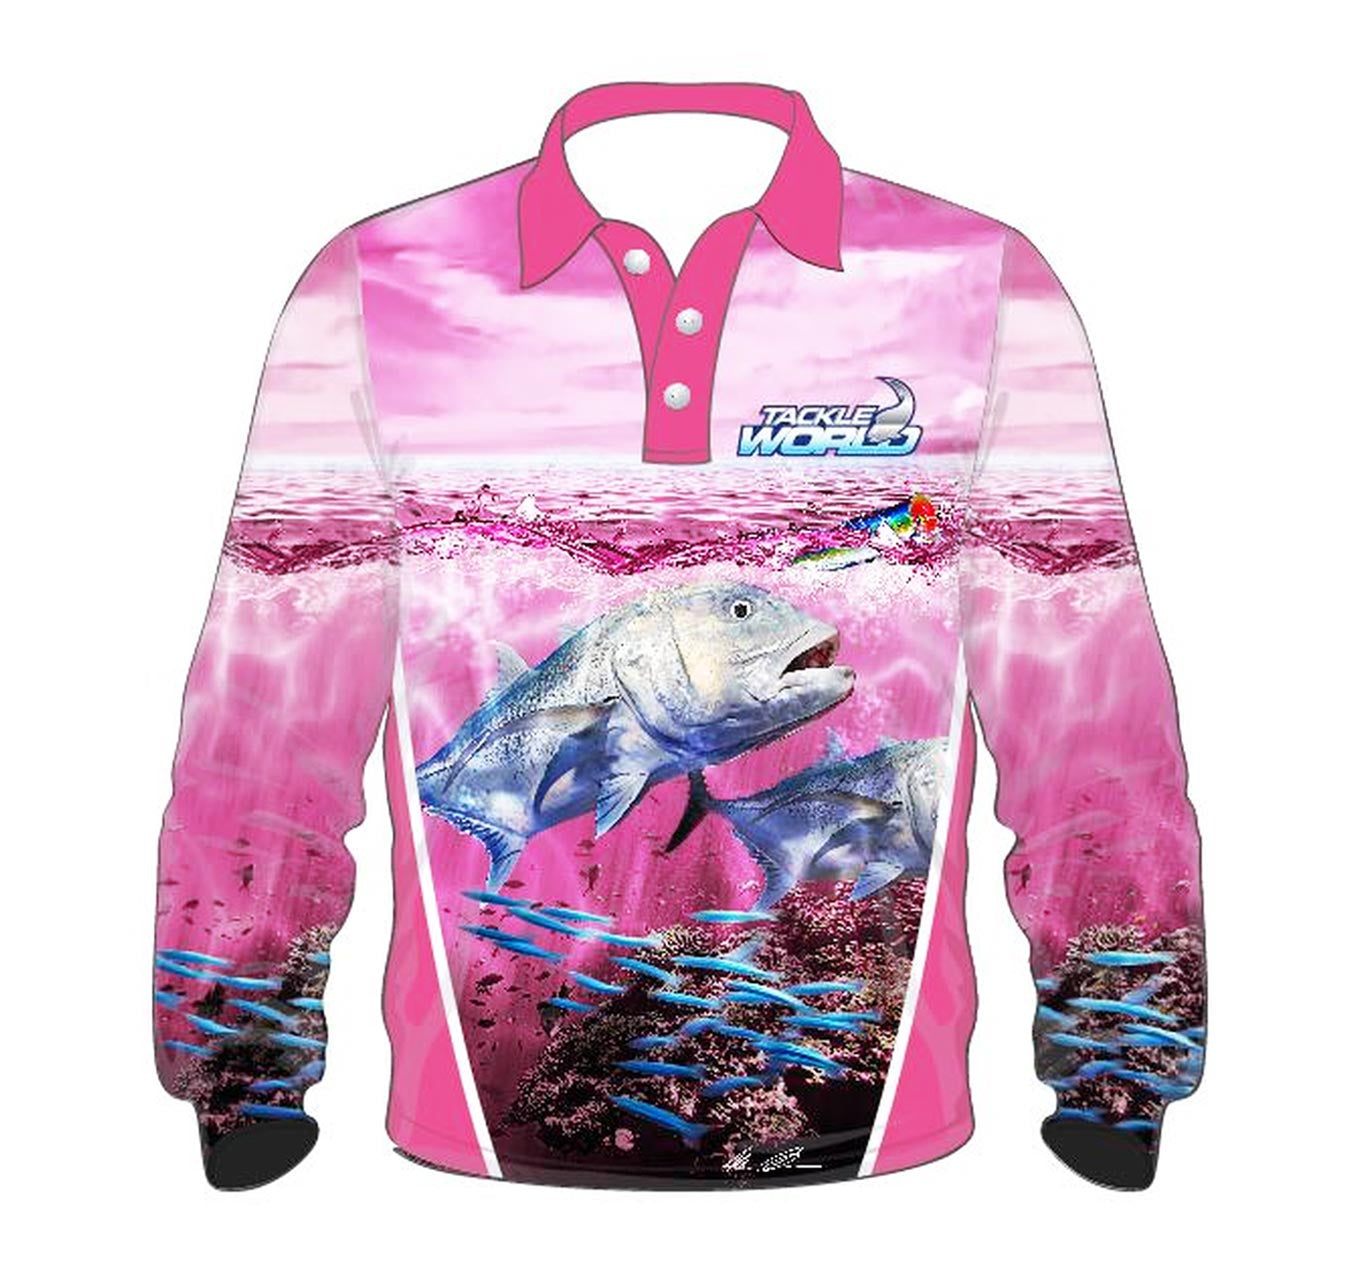 Tackle World GT Pink Girls Fishing Shirt